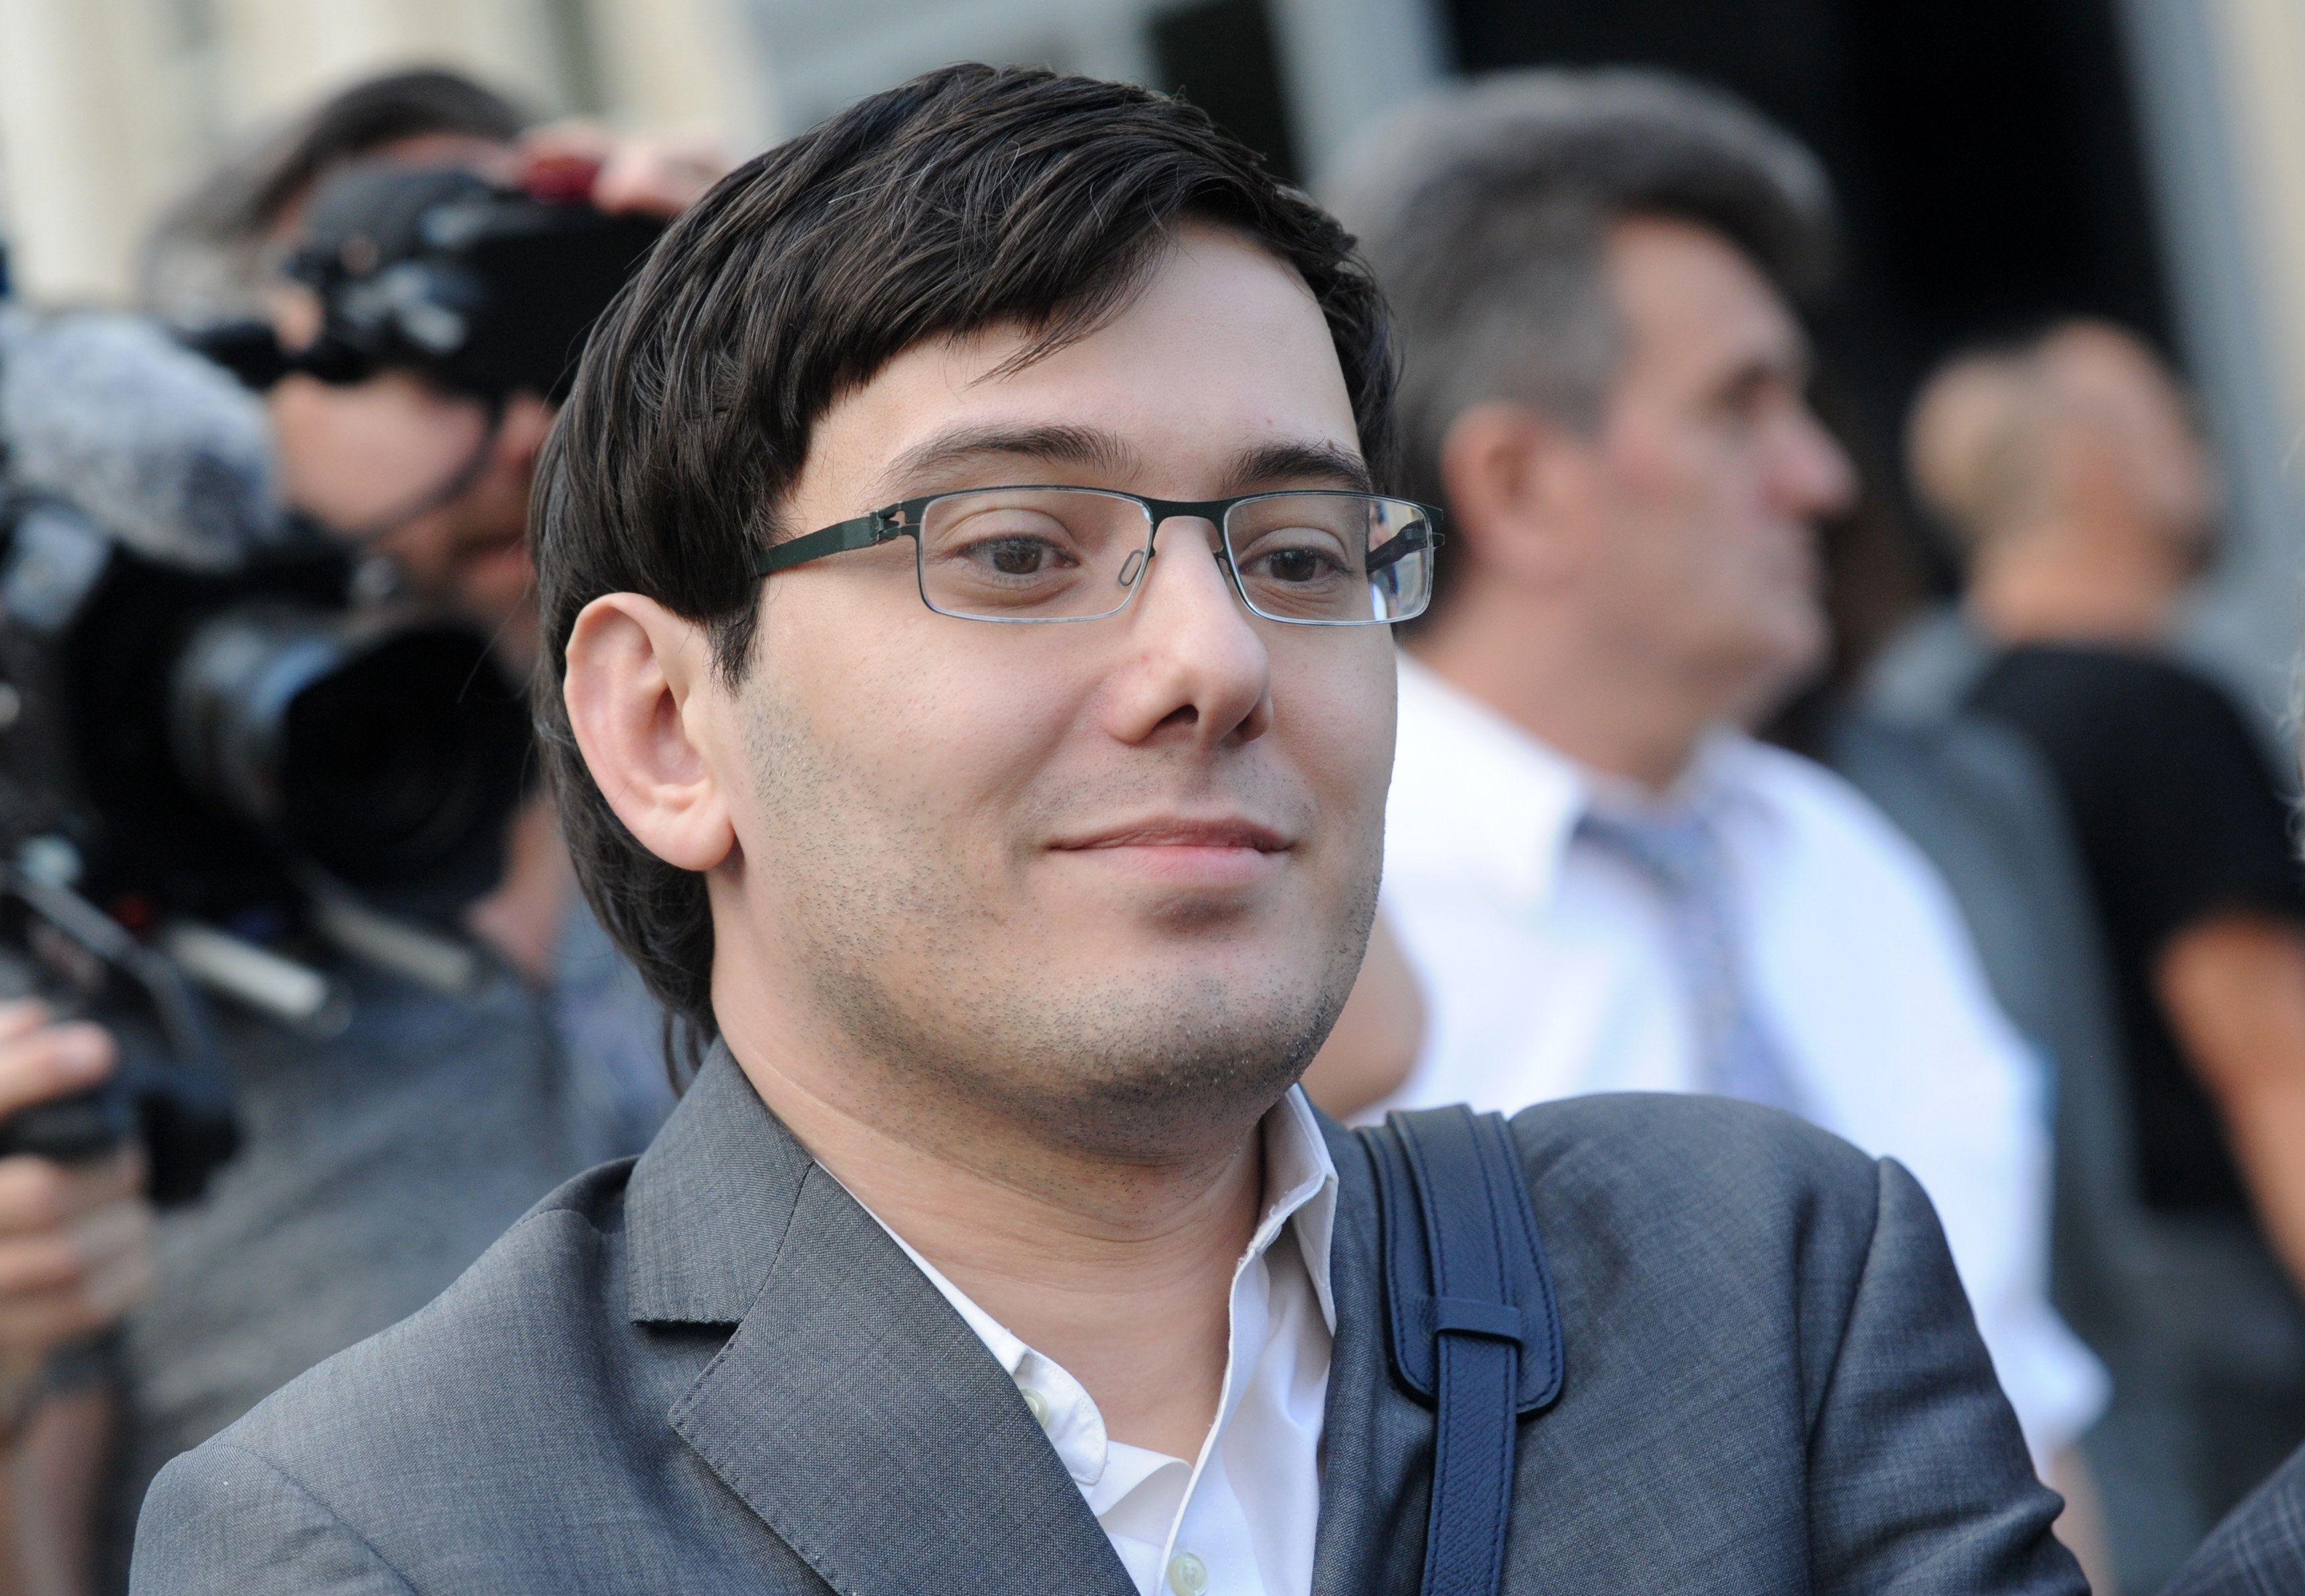 Former Turing Pharmaceuticals CEO Martin Shkreli, seen in 2017, is suspected of running his pharmaceutical company, Phoe